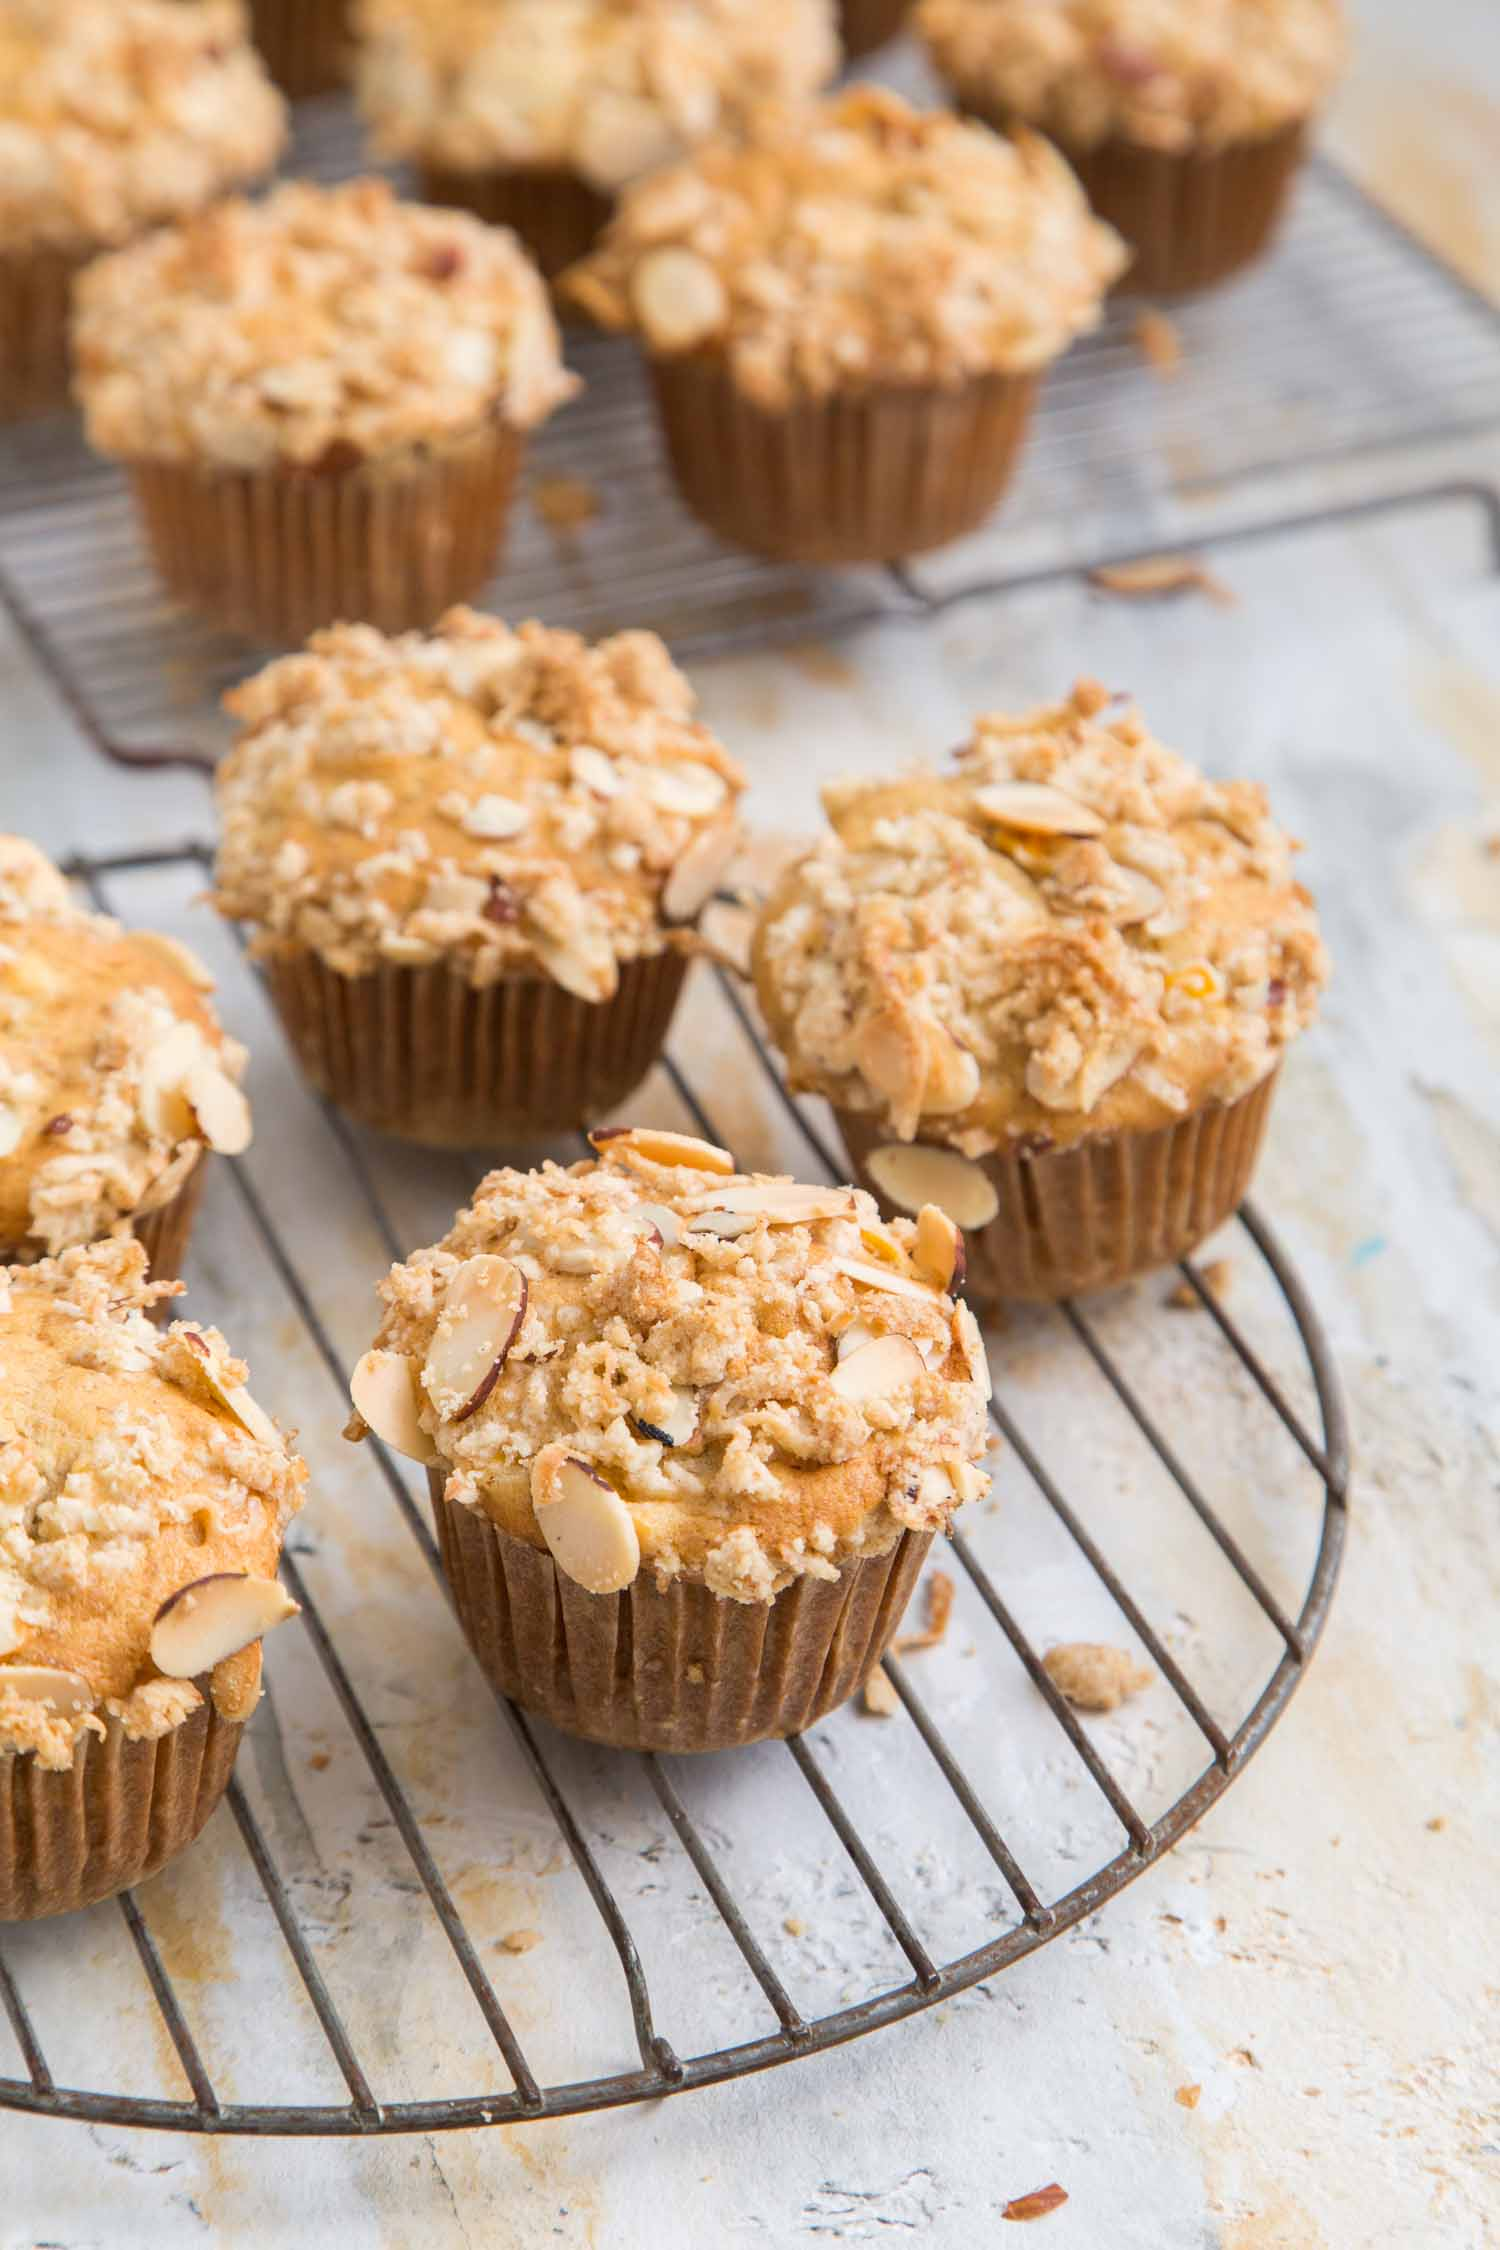 Banana Jackfruit Muffins with crumble topping